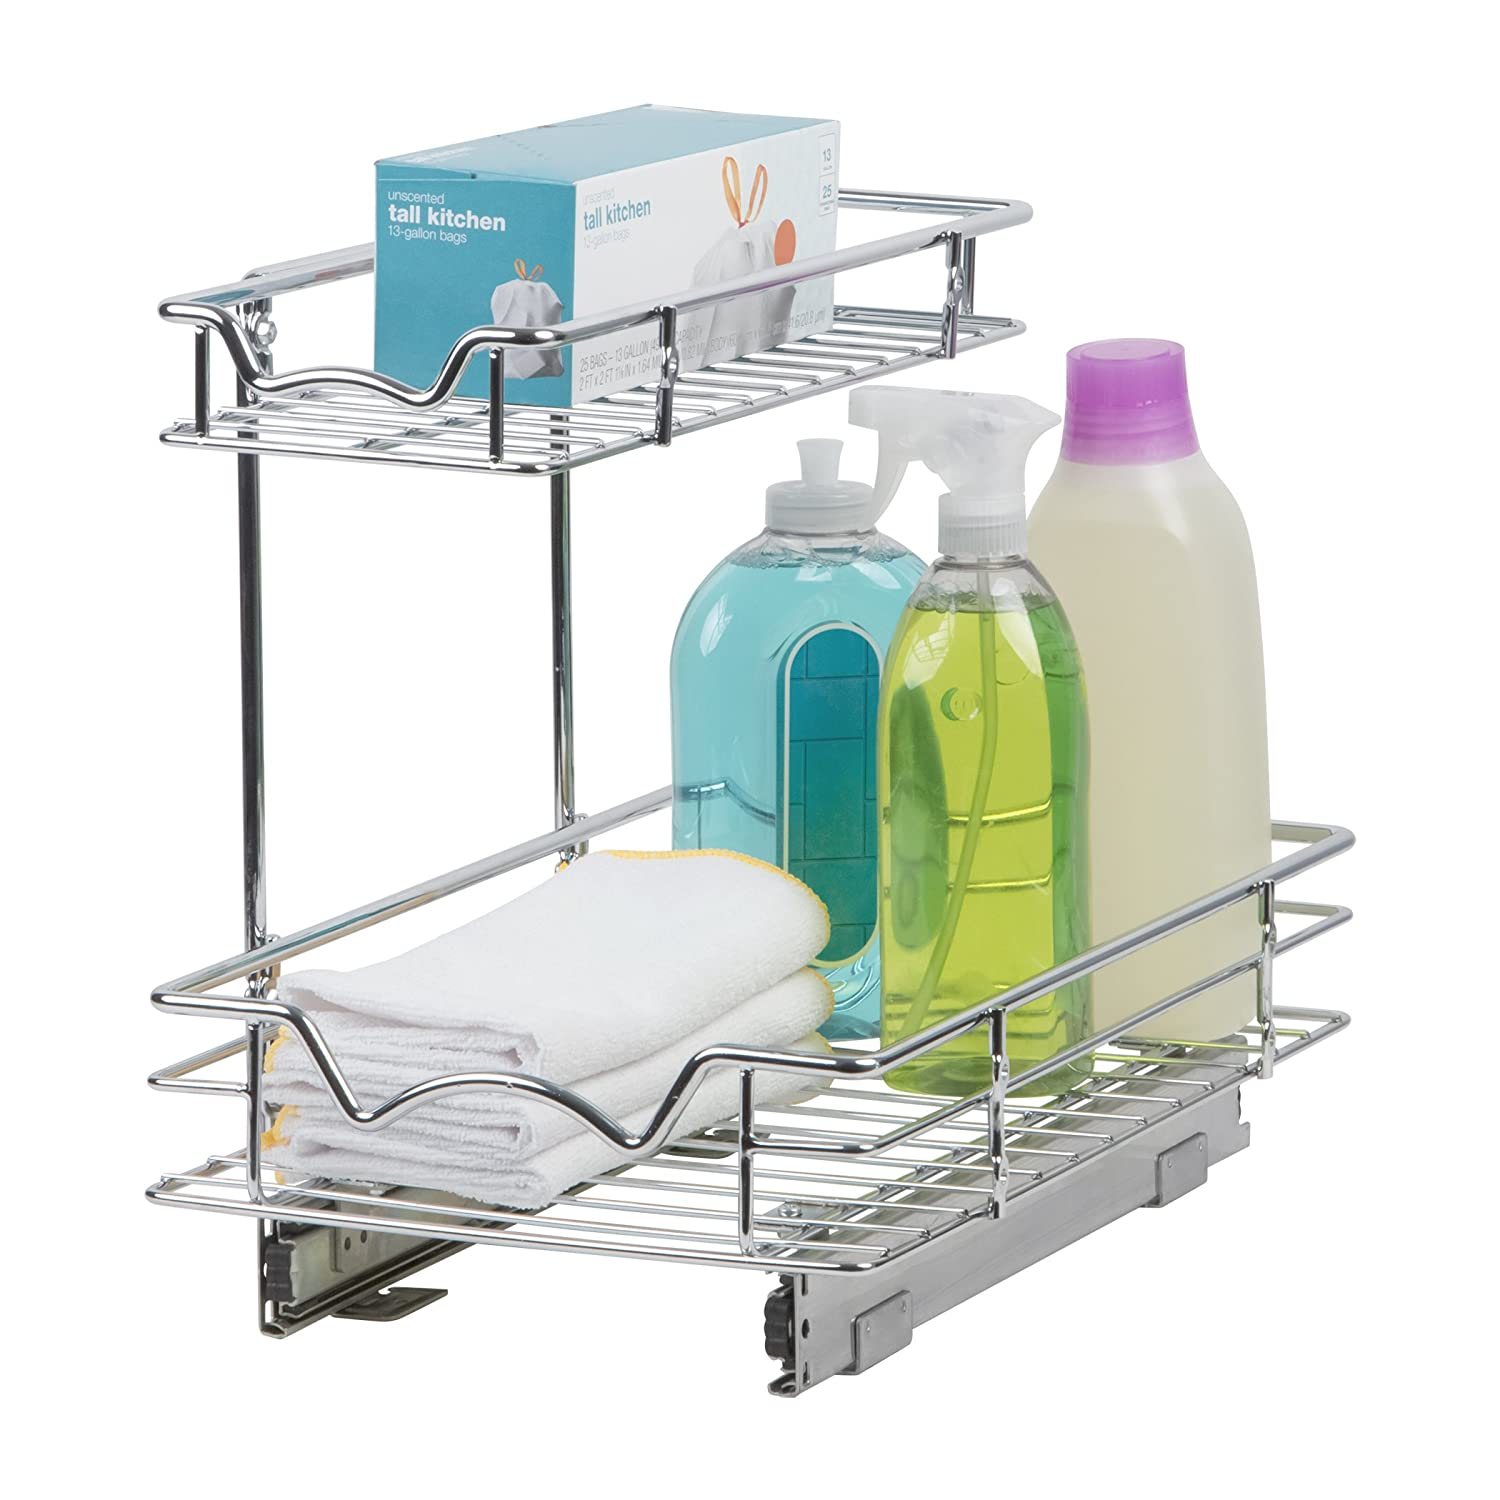 "Richards Homewares 220115 Two Tier 11""W X 18""D X 14-1/2""H, Requires at least 12"" Cabinet Opening, Kitchen Pull Out Cabinet Organizer With Sliding Shelves"